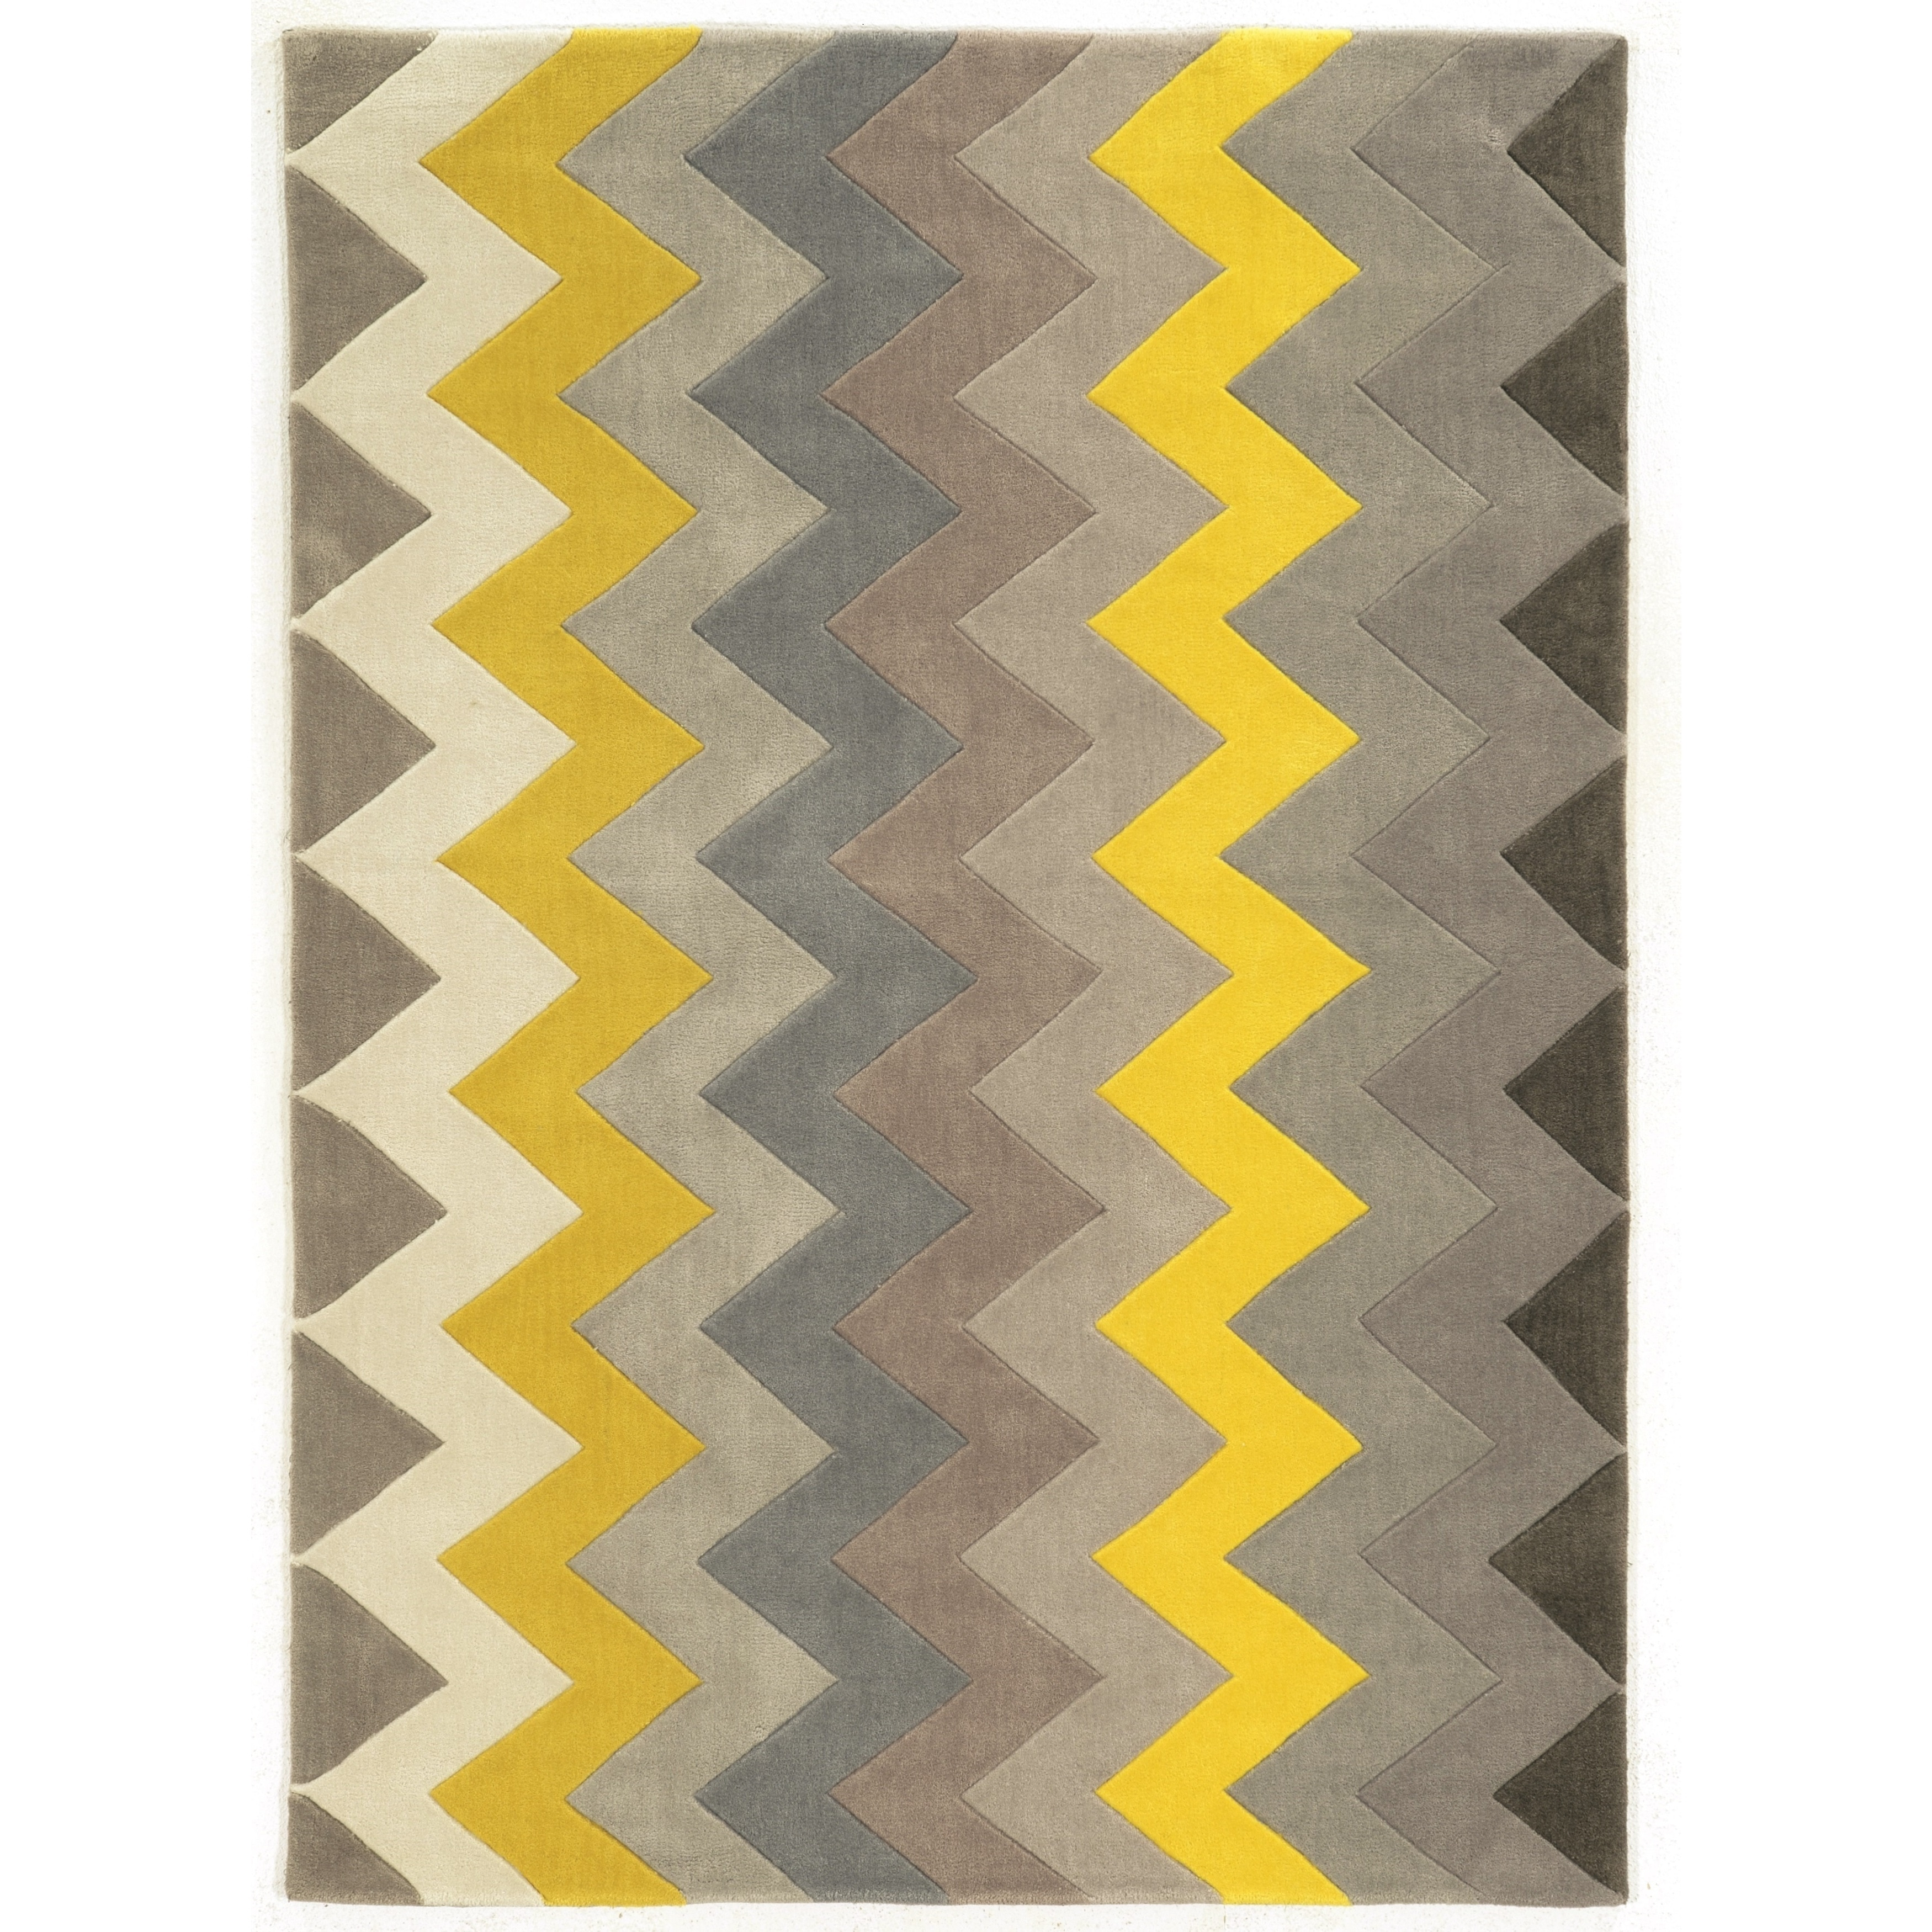 navy rug light white gray artistry tables aqua cream and costco striped blue teal most coffee solid grey target rugs first area class yellow brown